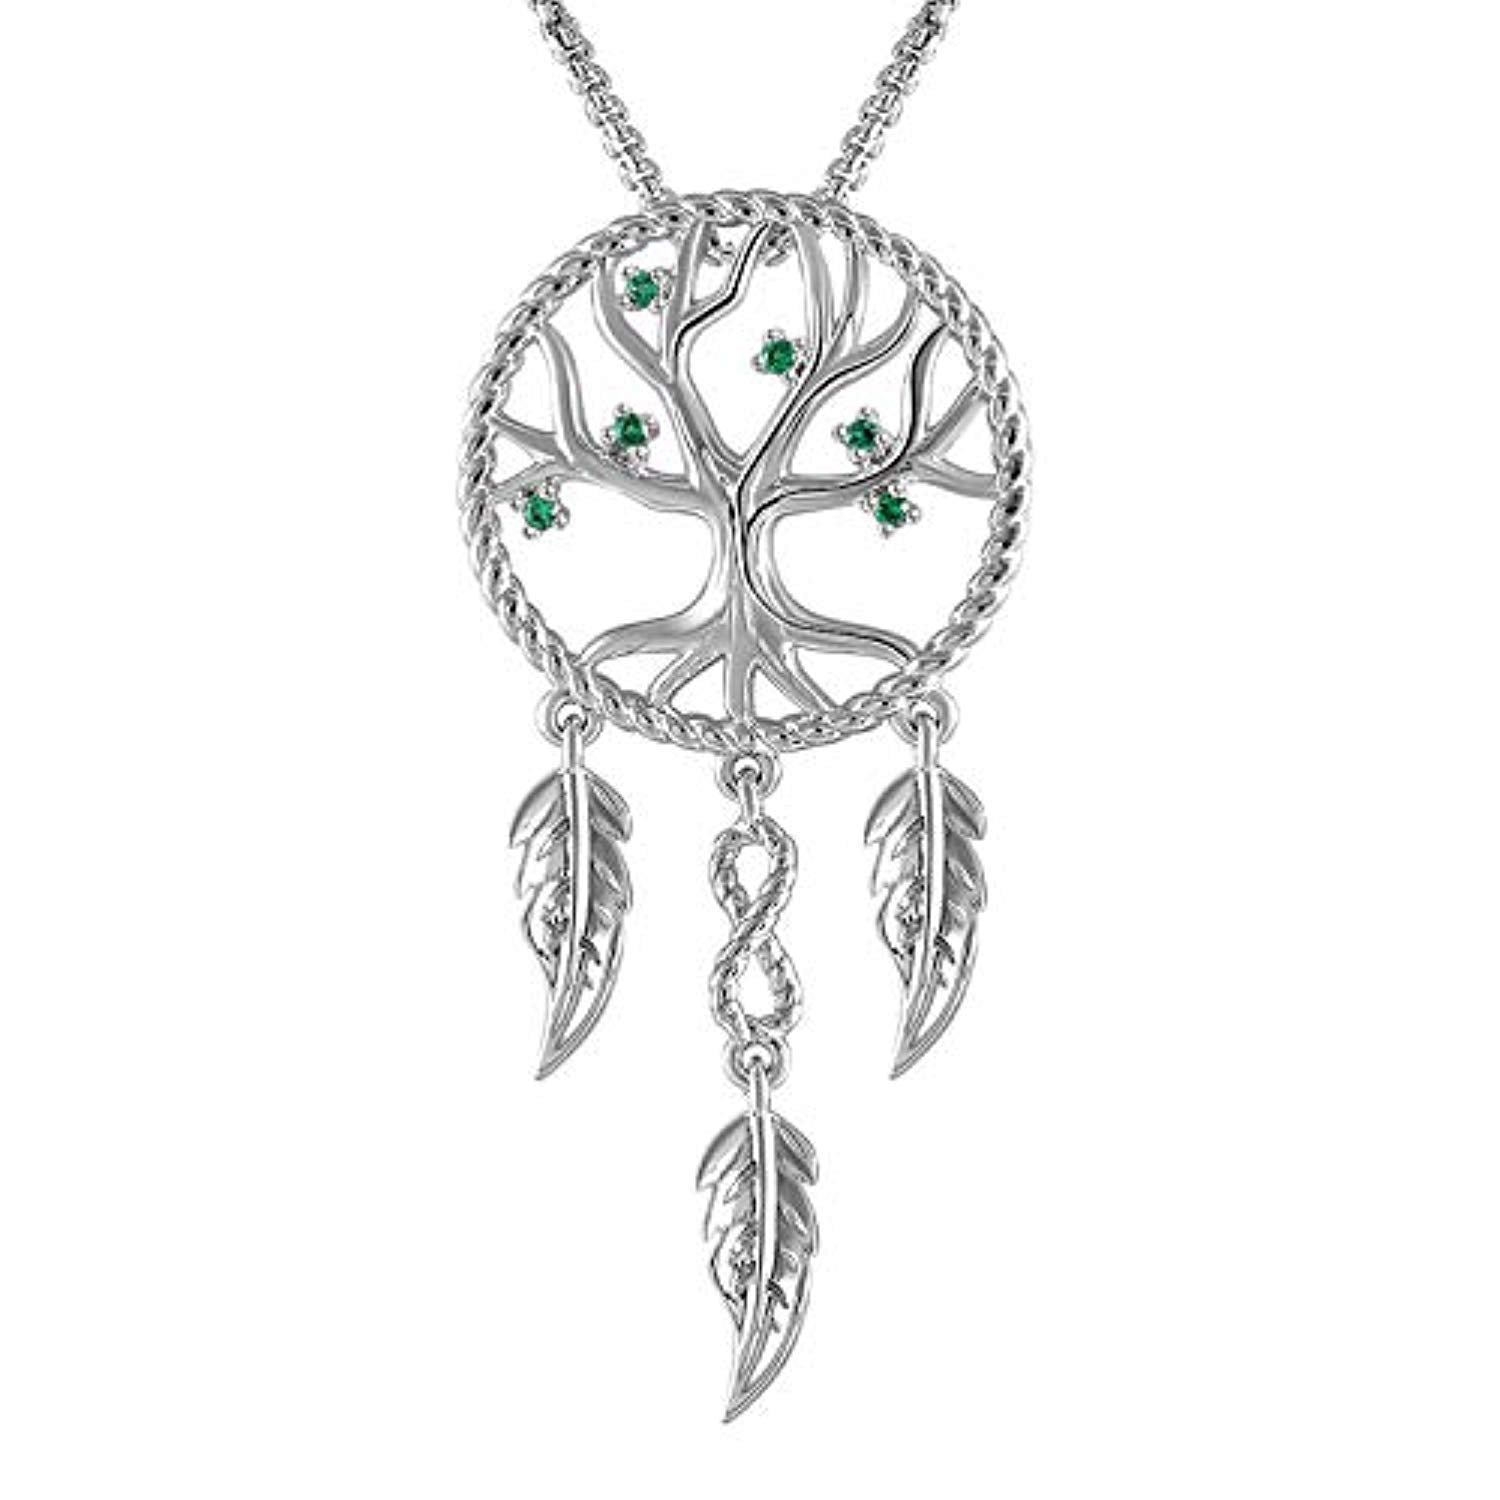 Family Tree of Life Pendant Necklace, Dream Catcher Net Necklace with August Birthstone Jewelry Birthday Gifts for Women Teens